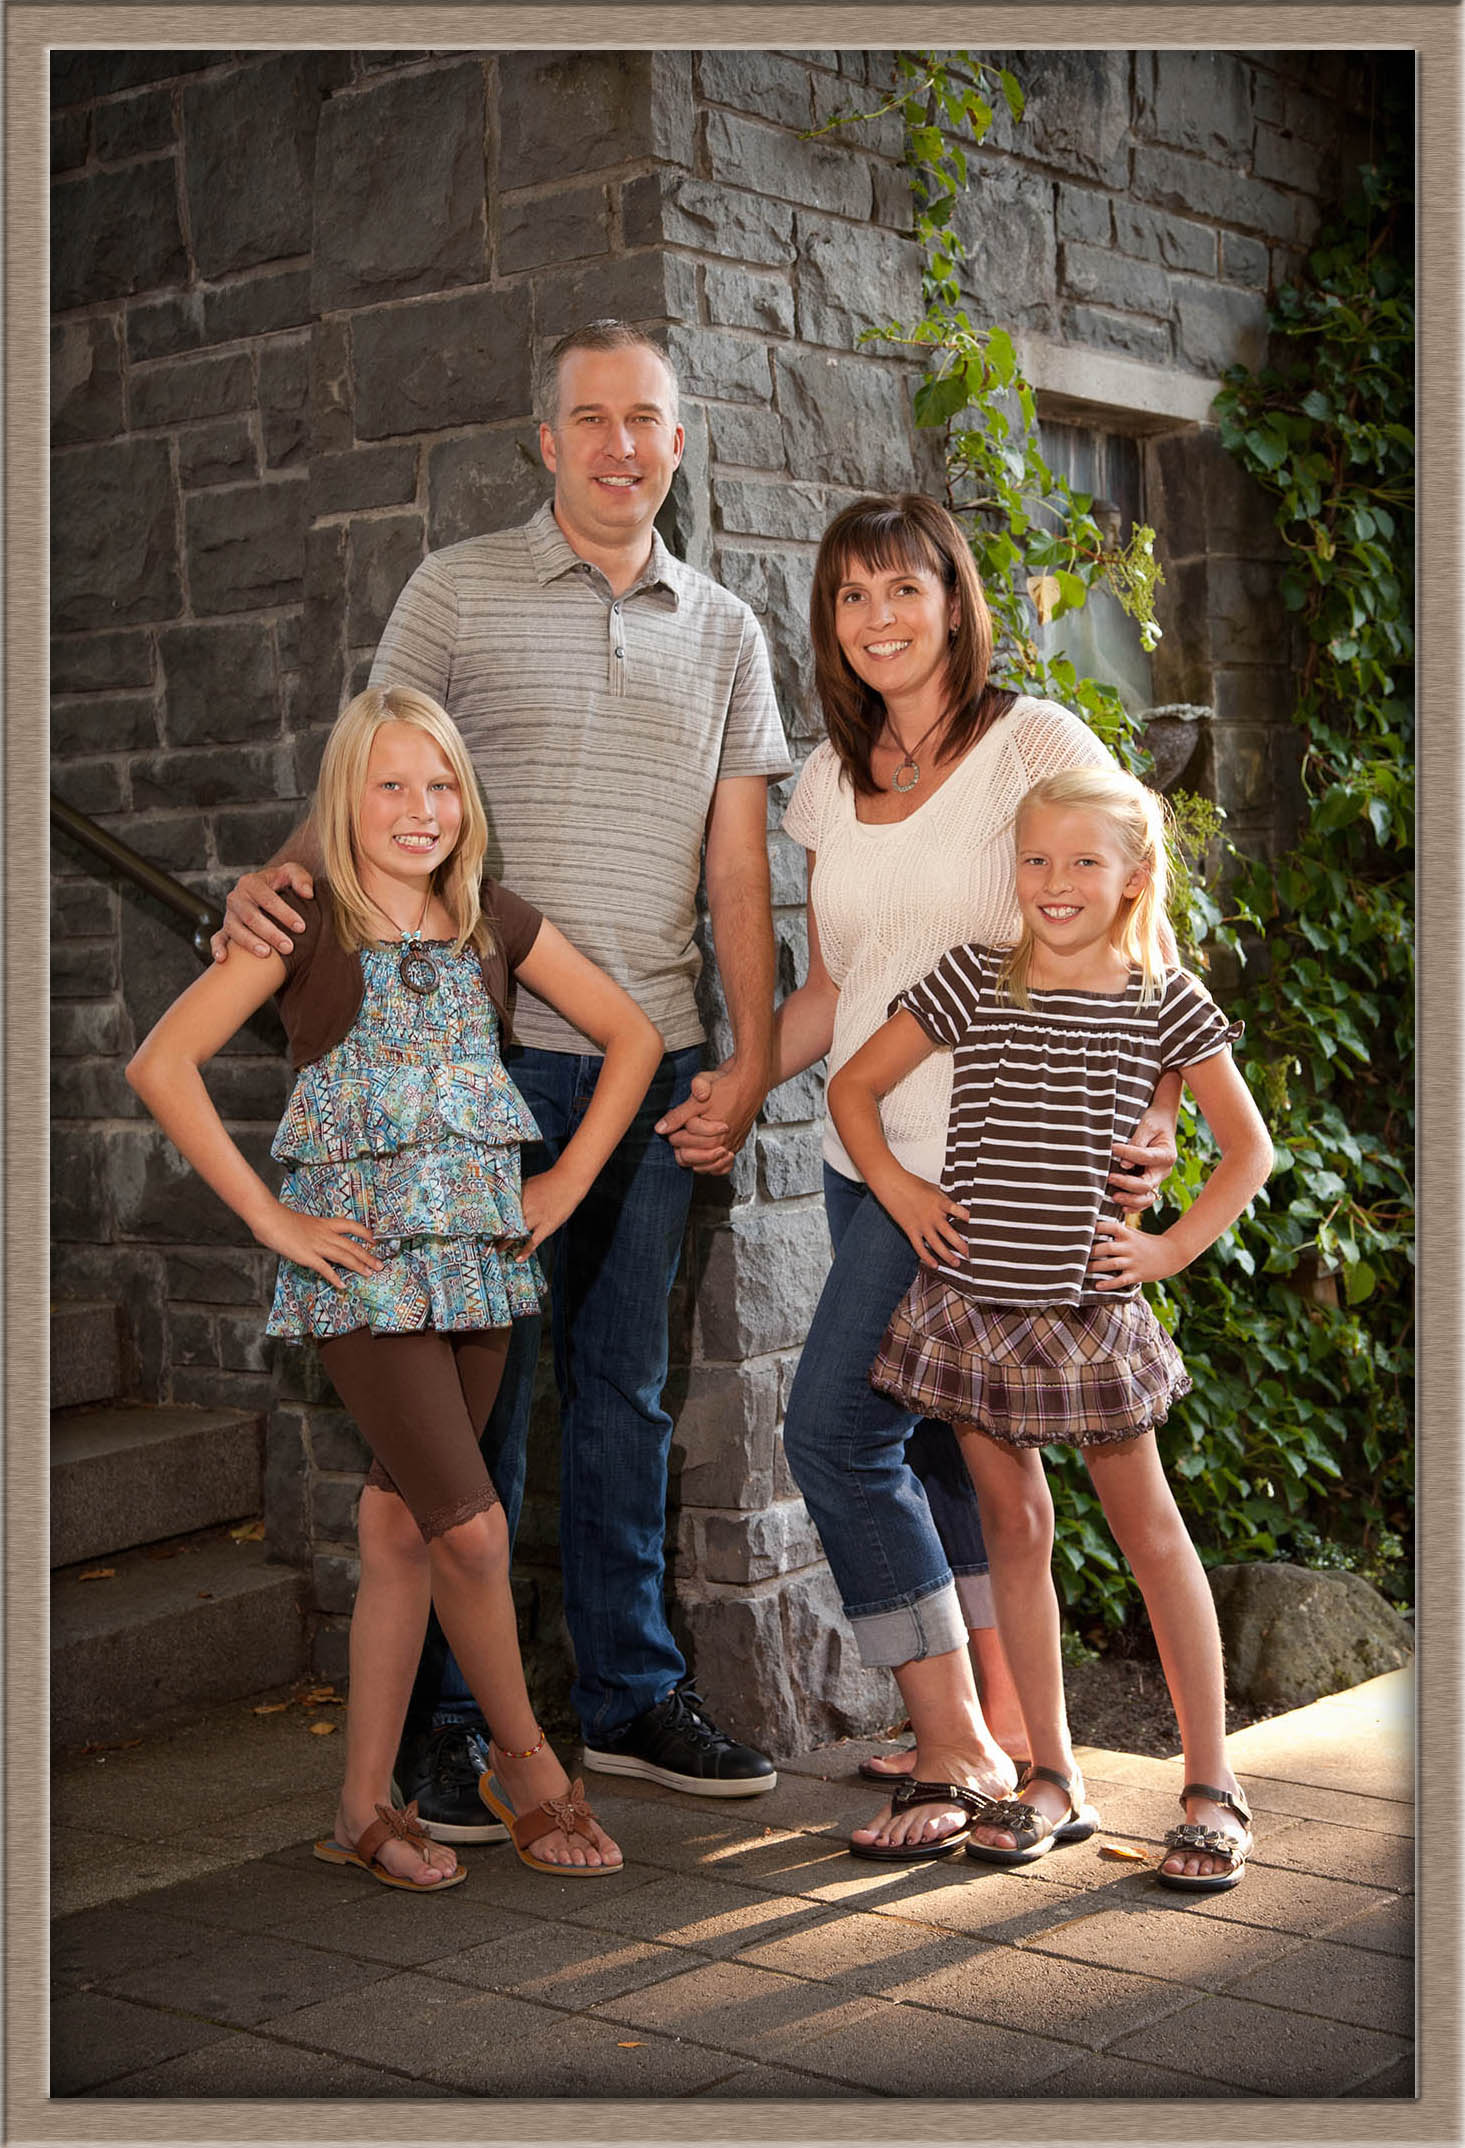 Outdoor Family Portraits | The Hodges Family - Hayne ... |Outdoor Family Photography